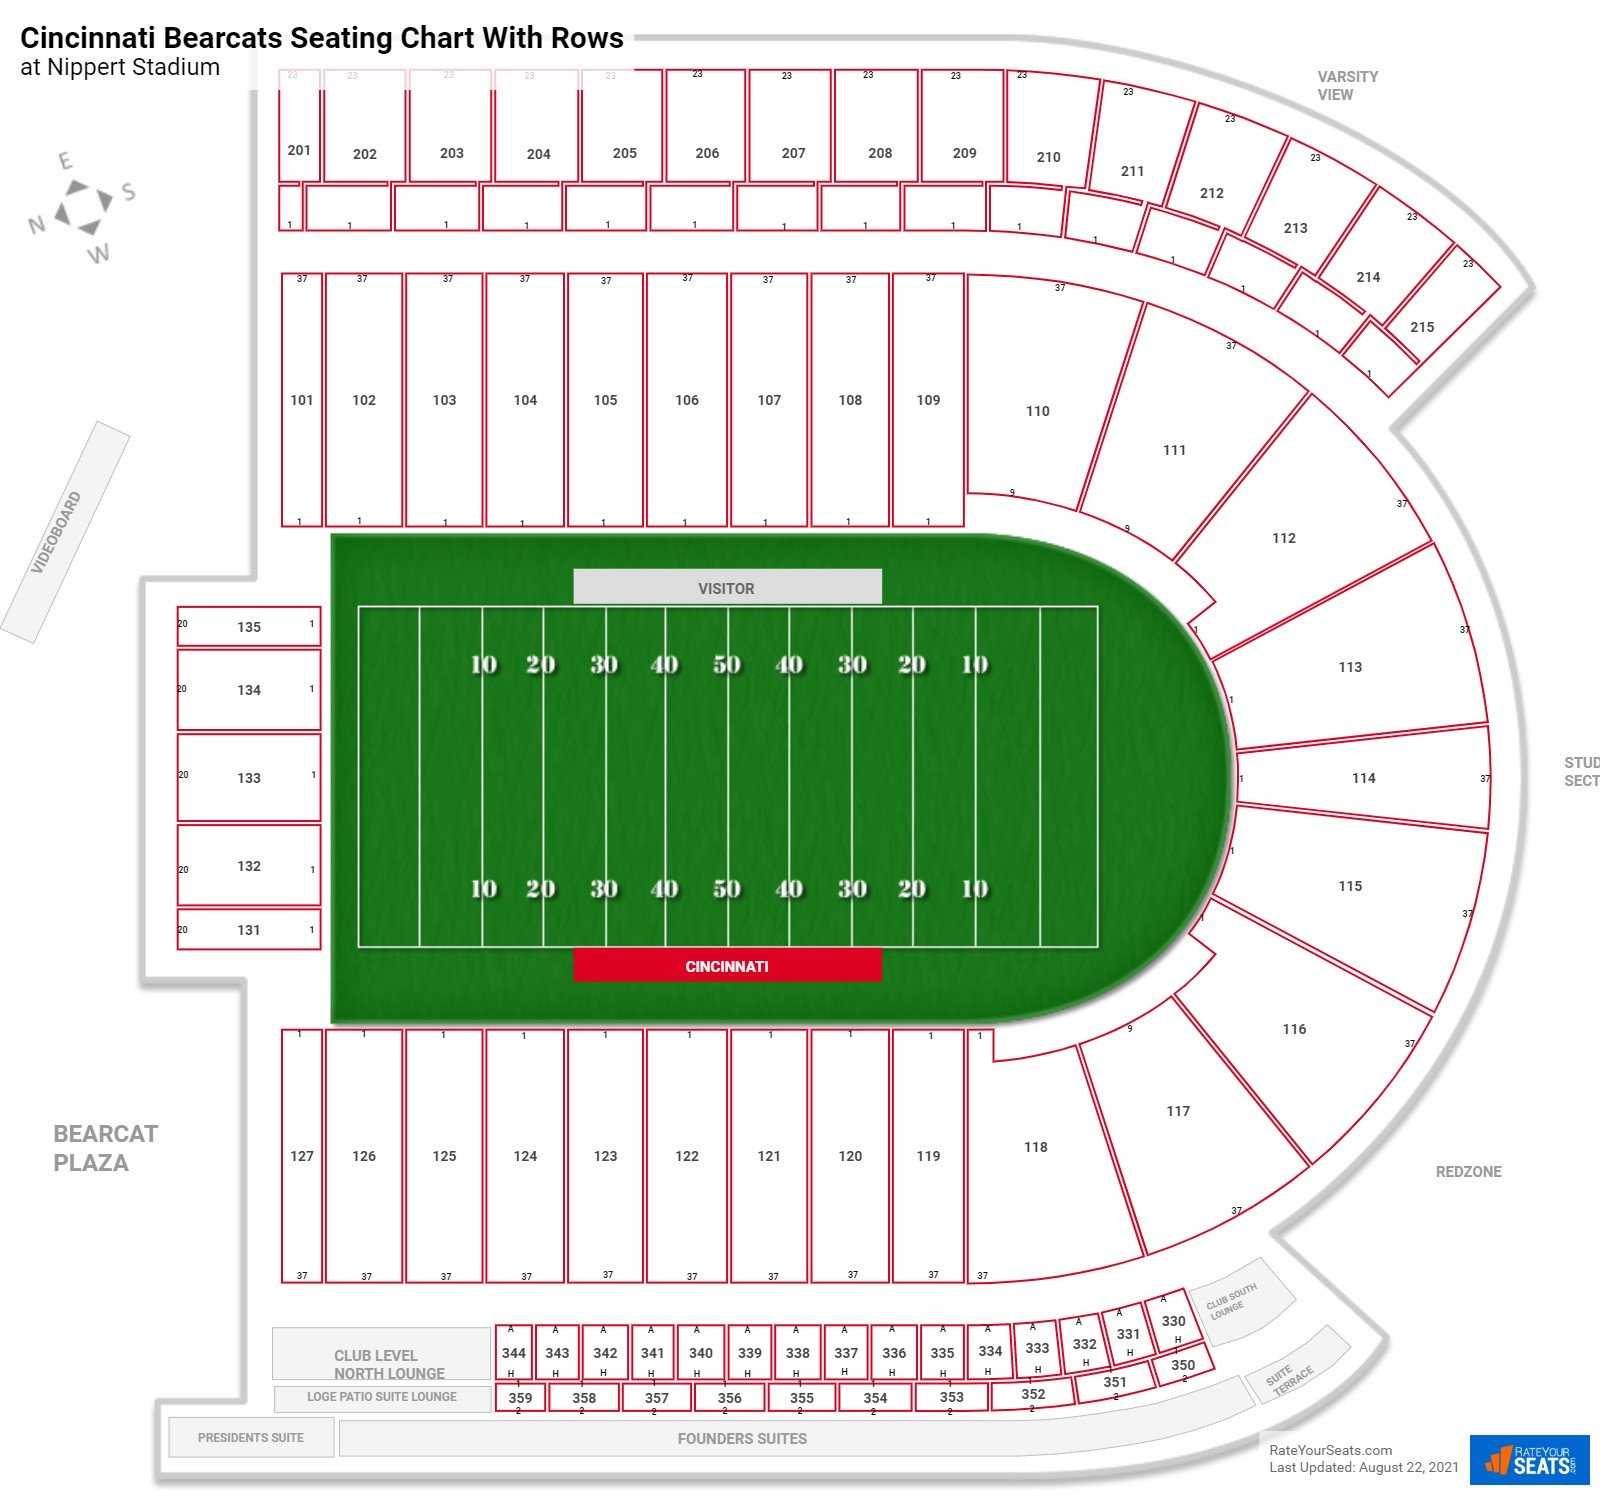 Nippert Stadium seating chart with rows football